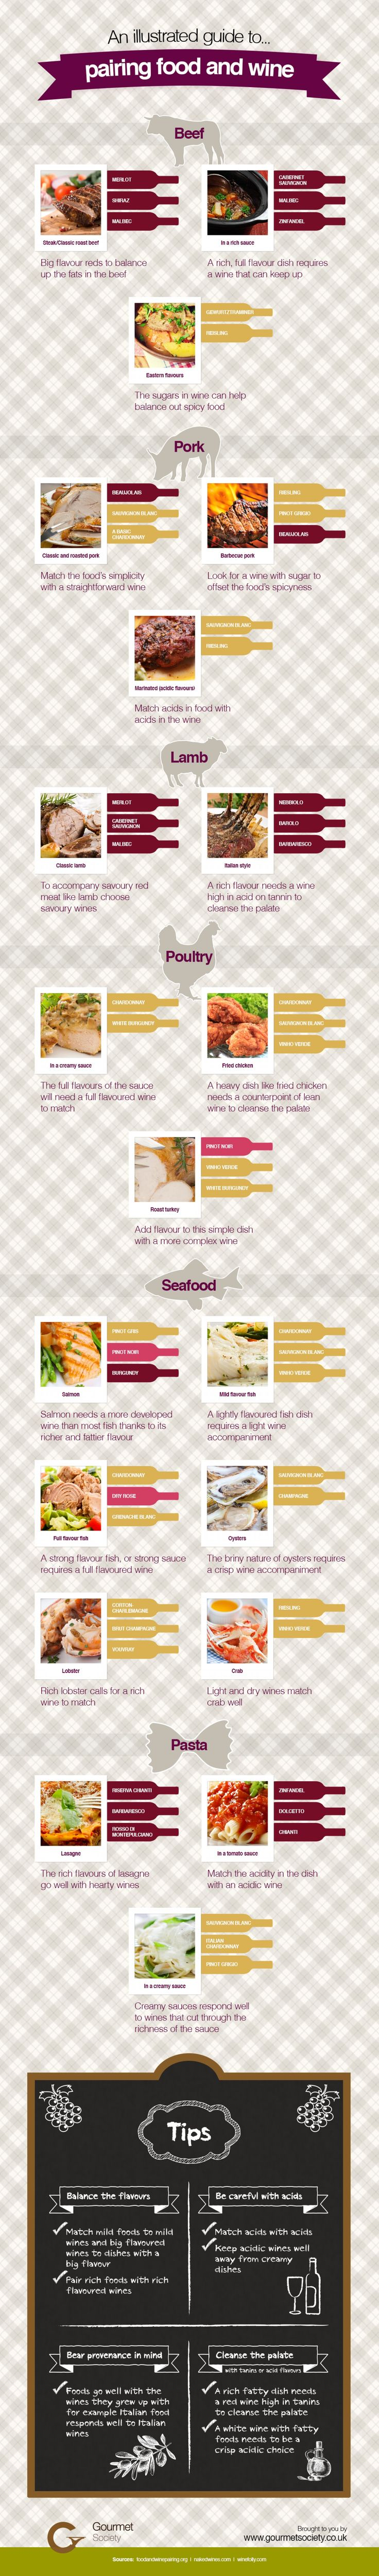 Pairing Wine and Food Infographic